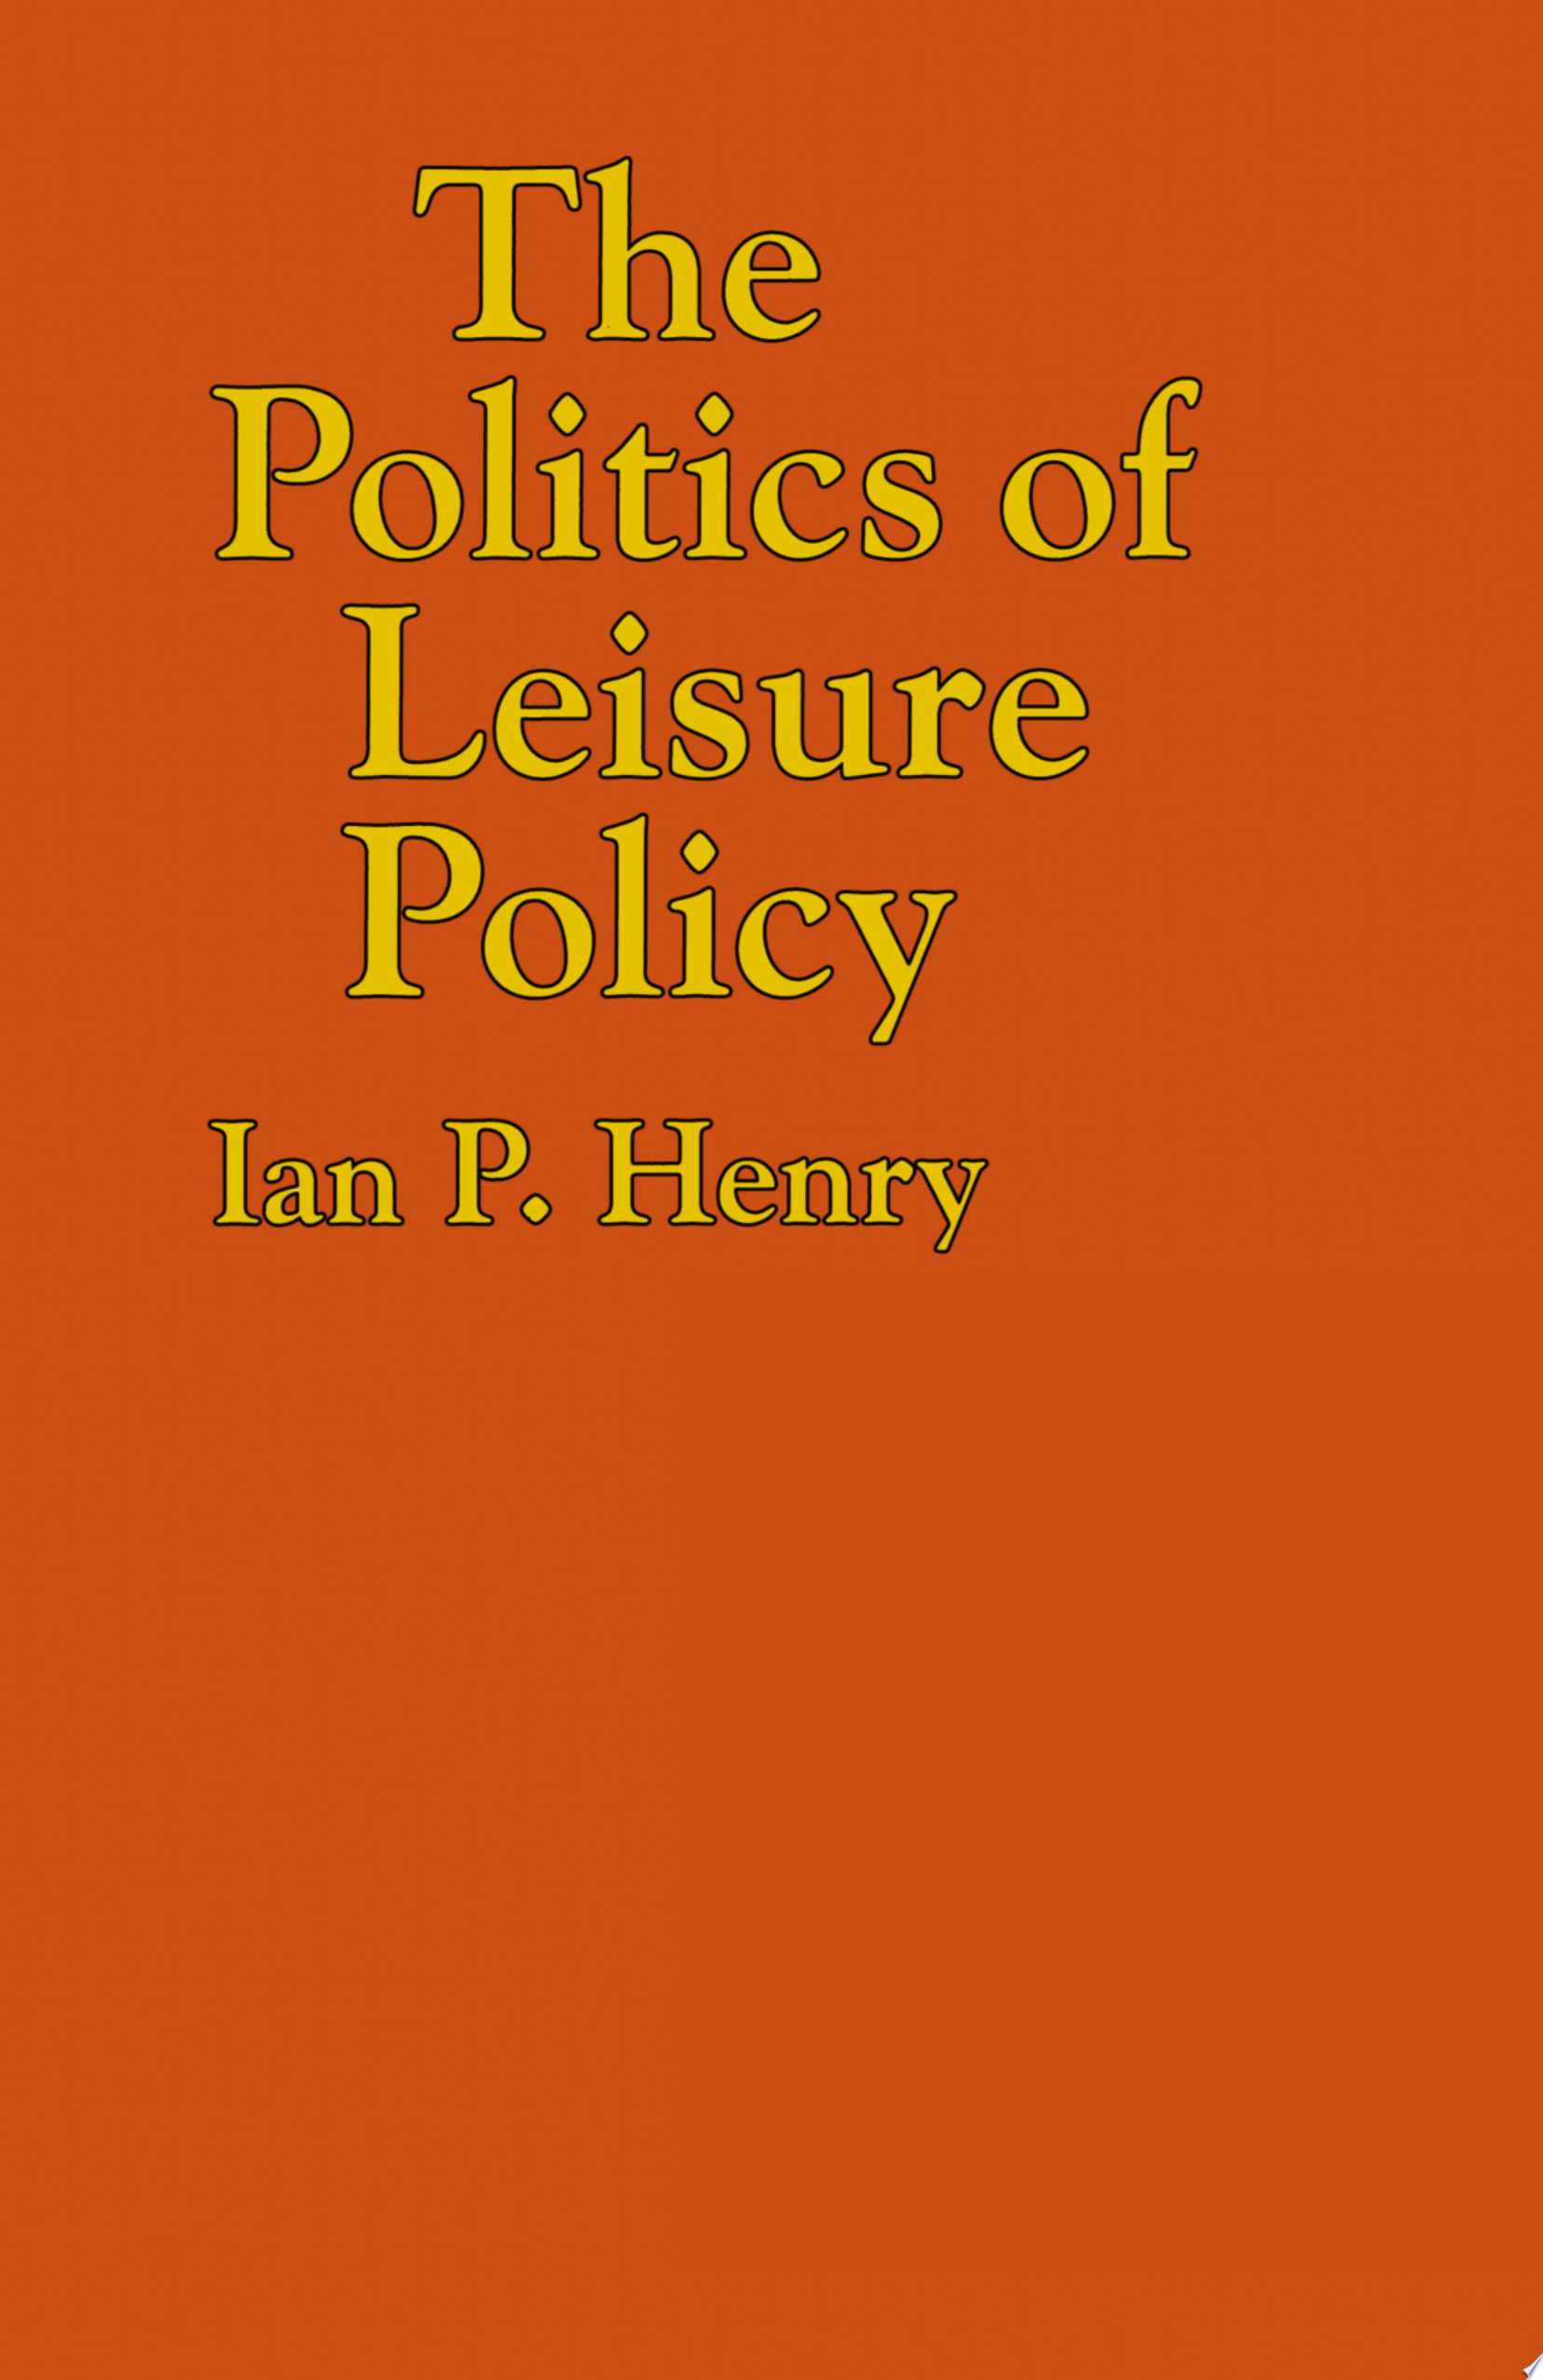 The Politics of Leisure Policy